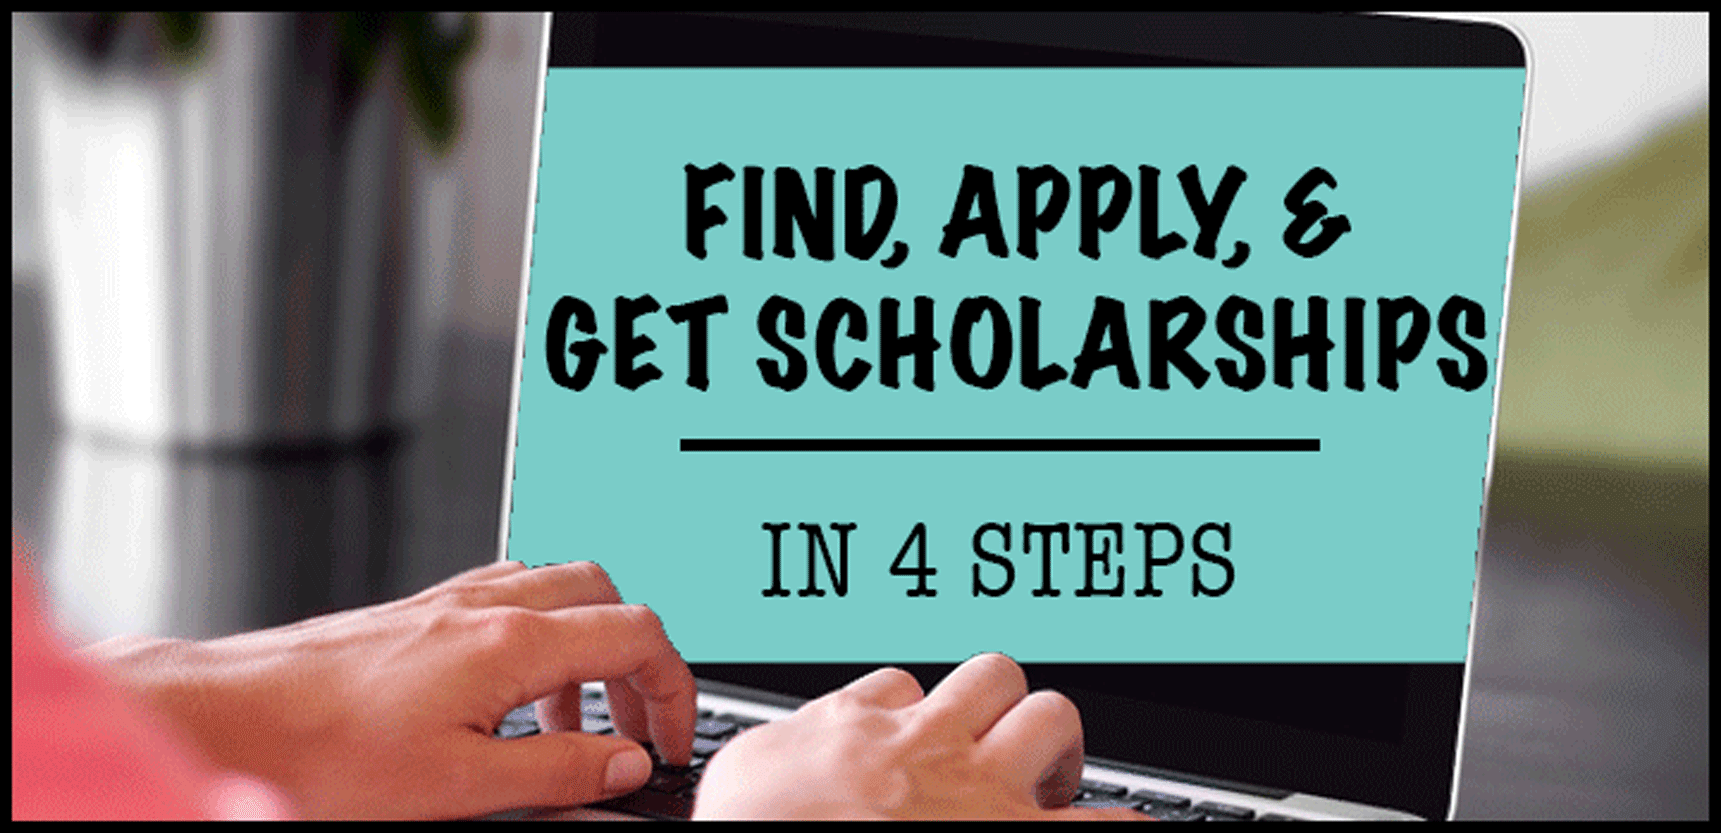 When should I apply for scholarships for college?